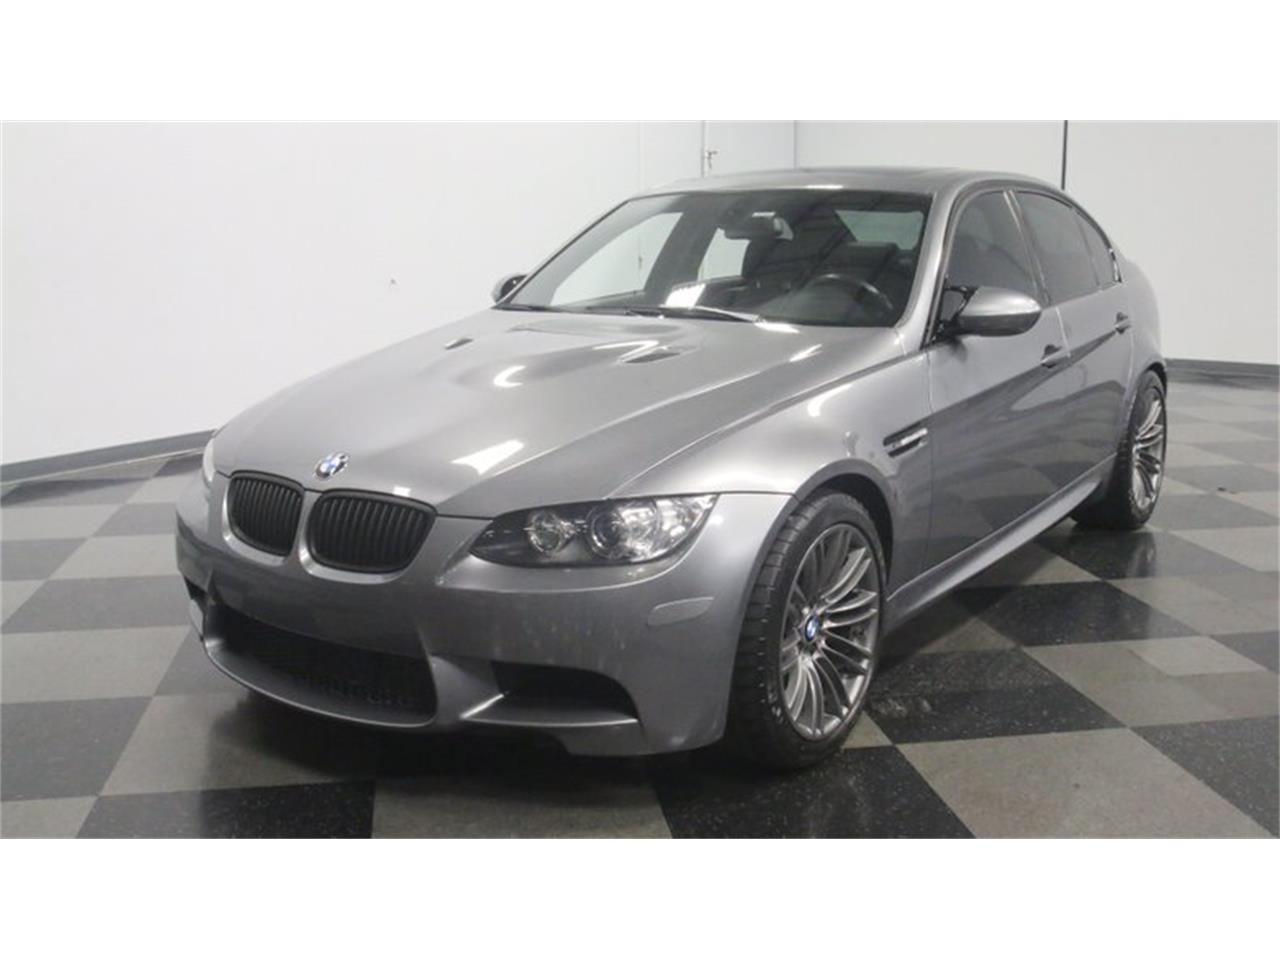 2010 BMW M3 for sale in Lithia Springs, GA – photo 5